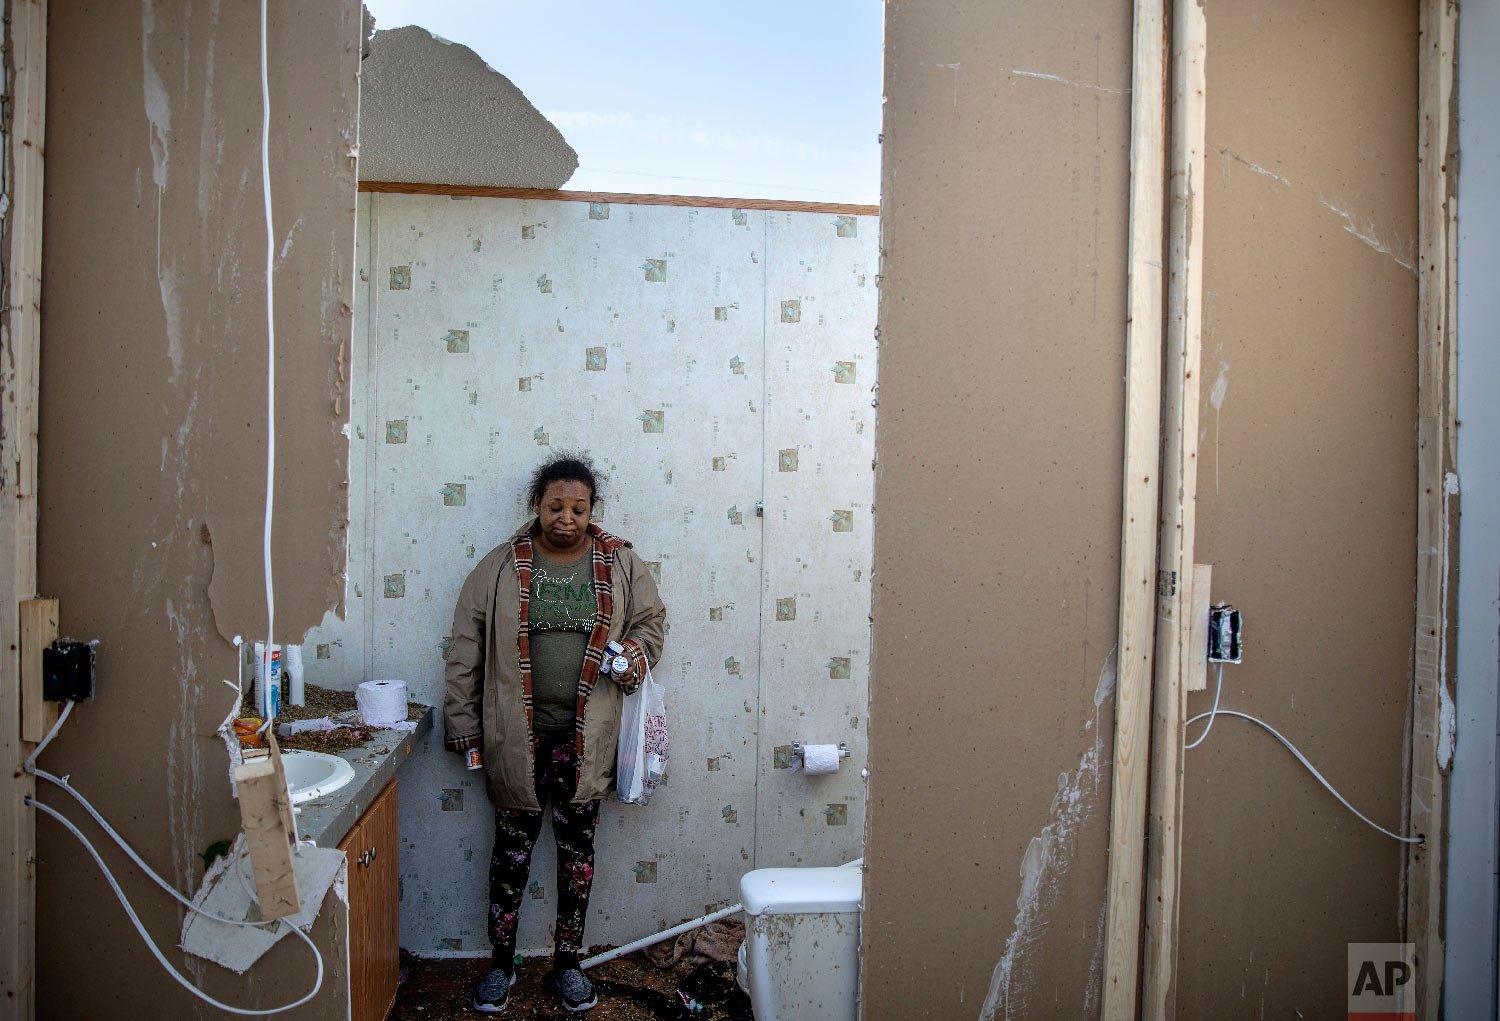 Shiraka Baker stands in the bathroom where she rode out a tornado with her husband and three children as she retrieves belongings from the damaged home in Beauregard, Ala., March 4, 2019. (AP Photo/David Goldman)